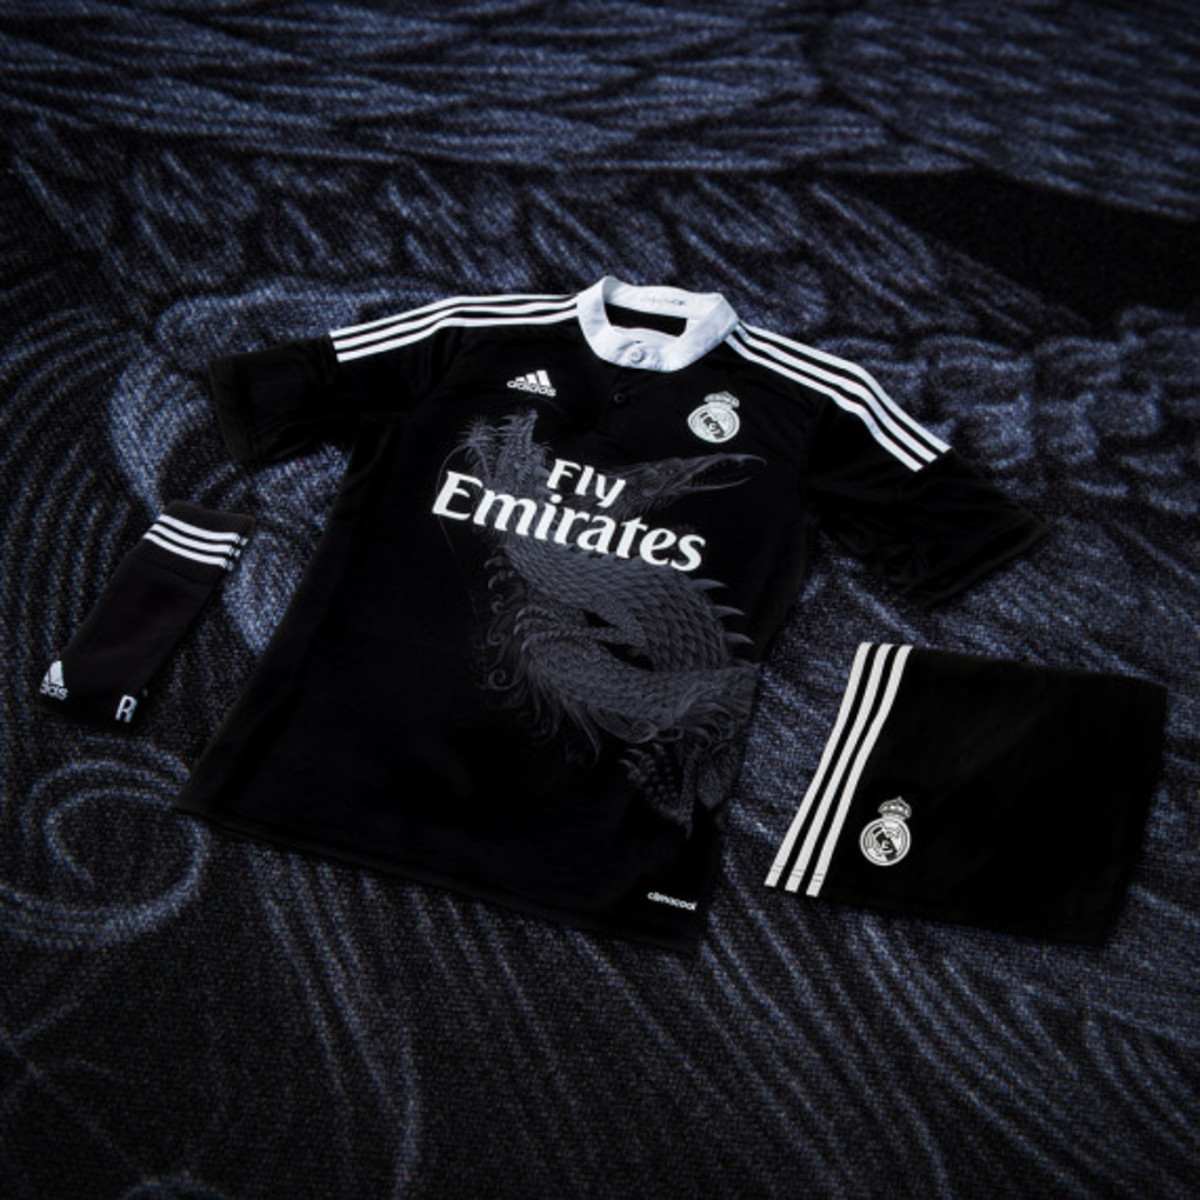 adidas-yamamoto-designed-real-madrid-third-kit-adizero-f50-cleat-06